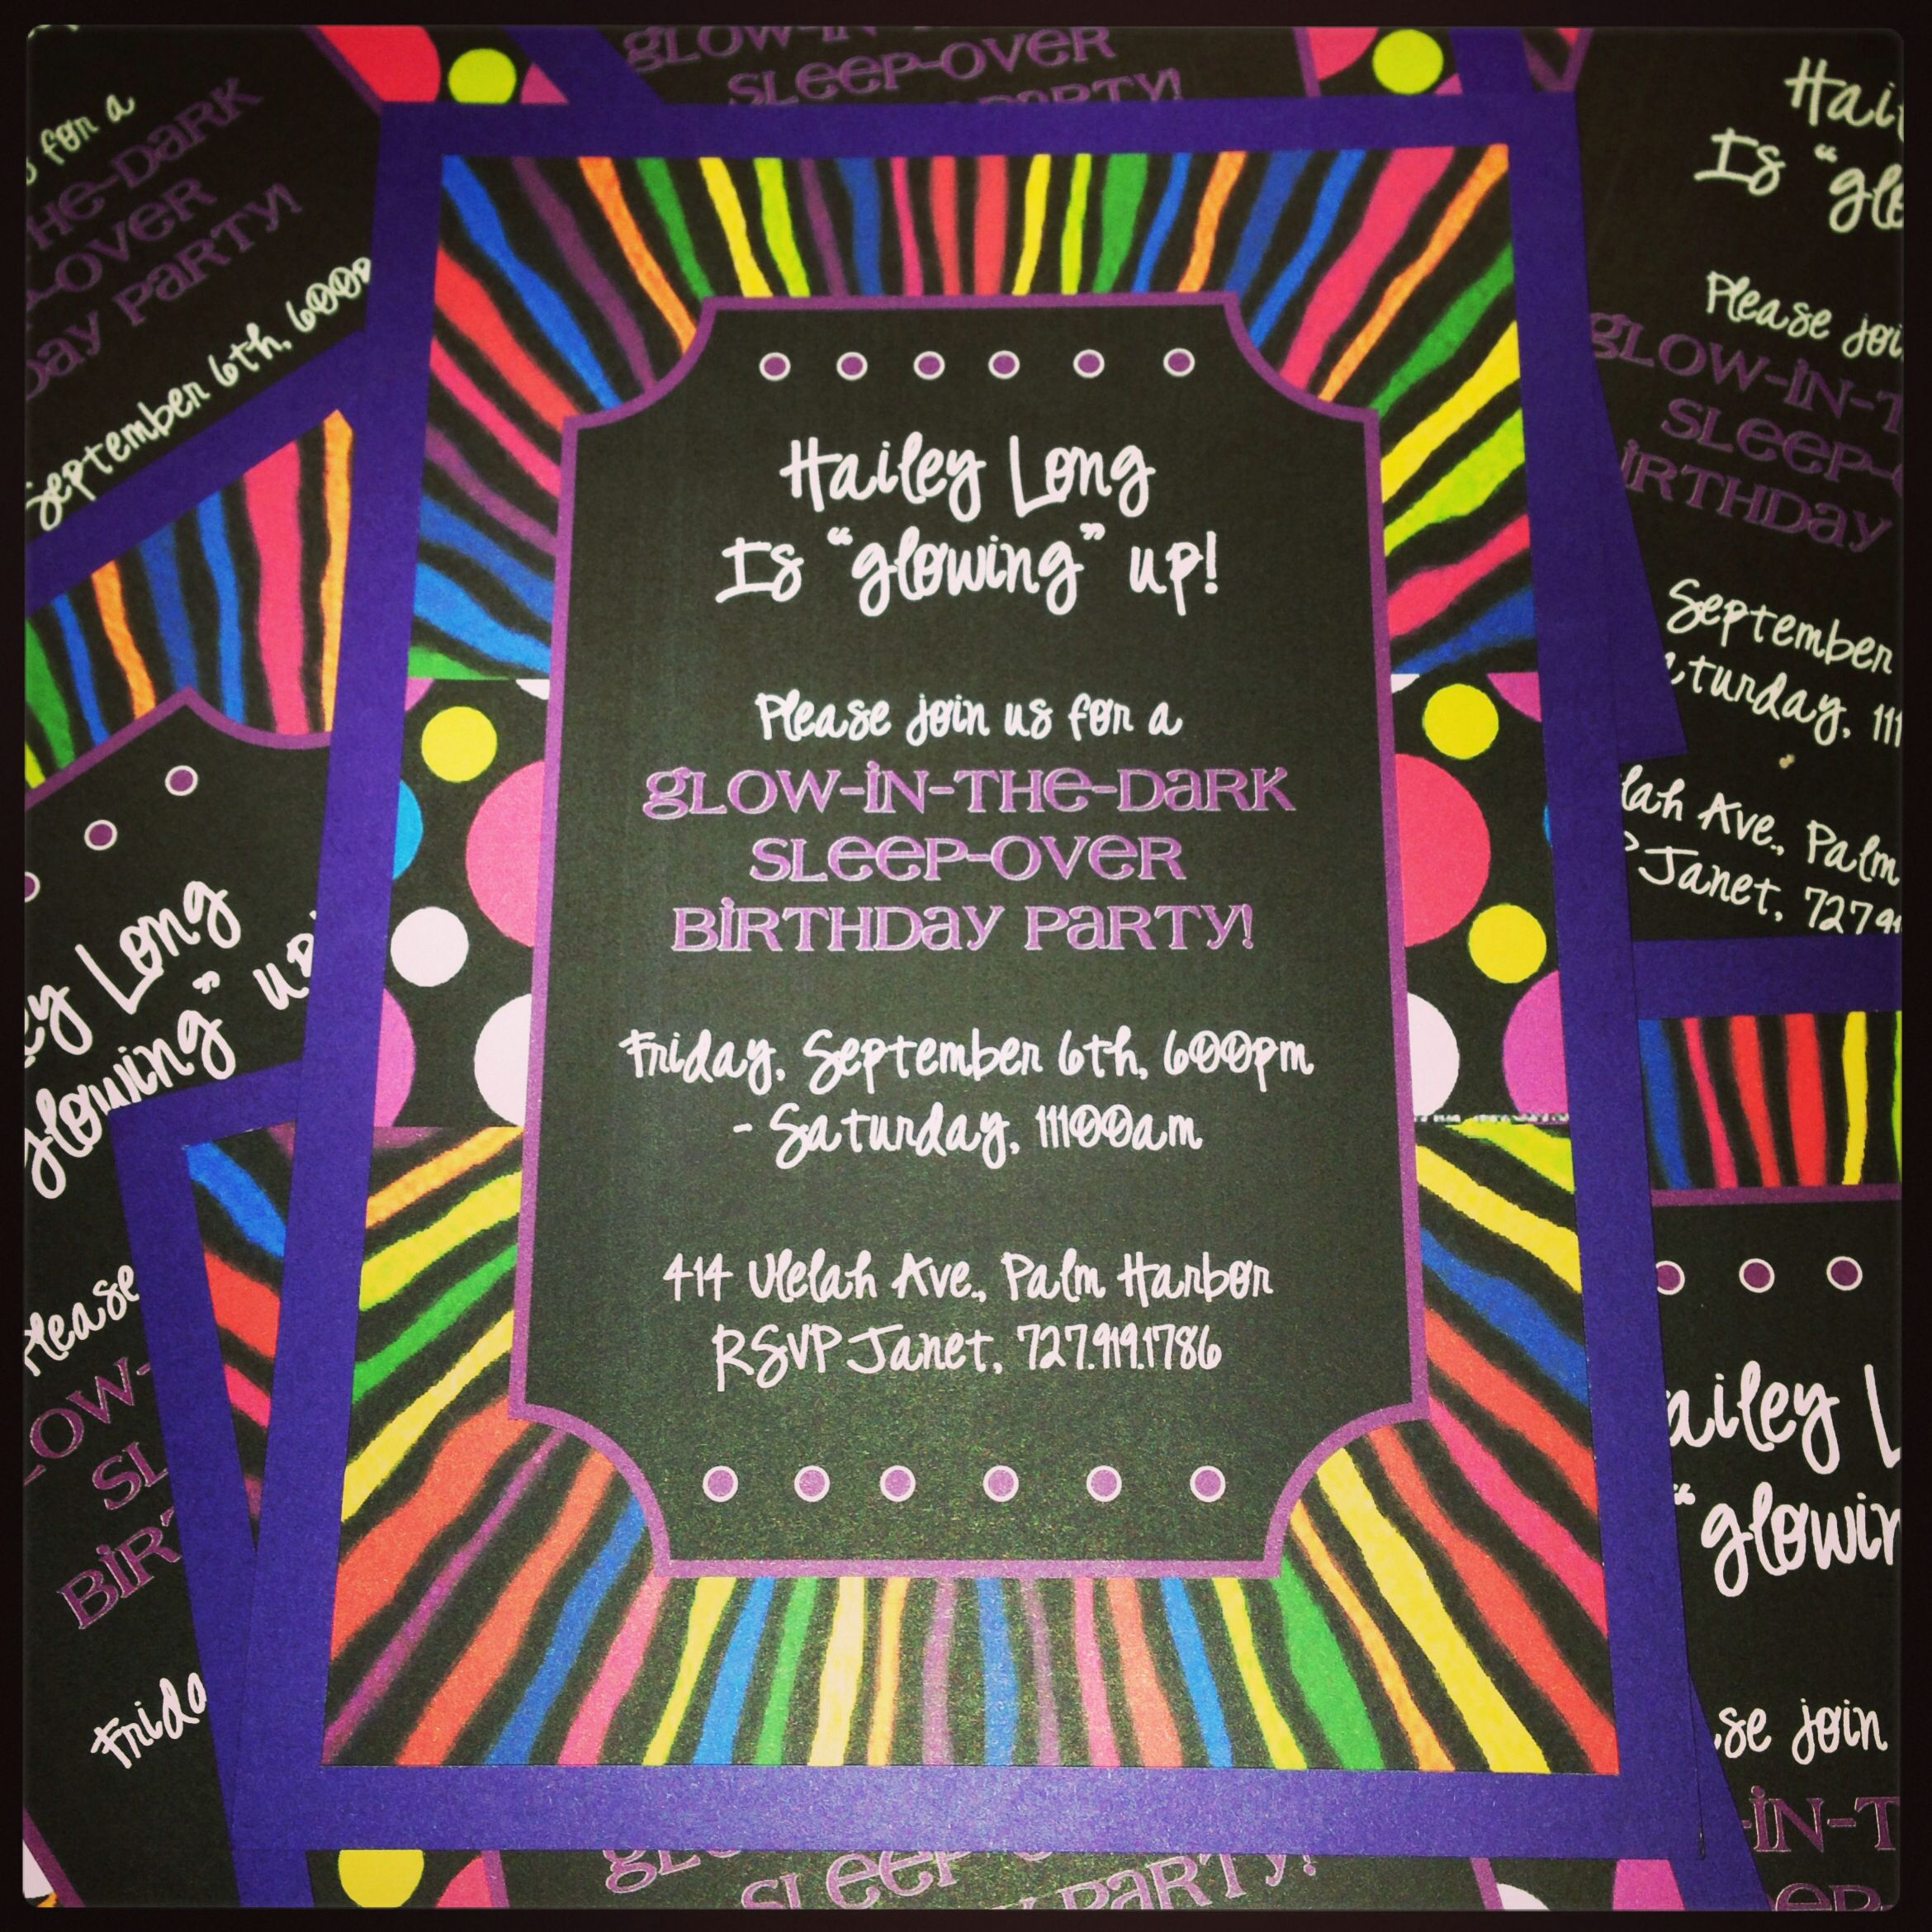 Party Invite for glow in the dark party from Kookie Krums  #peacelovecookies